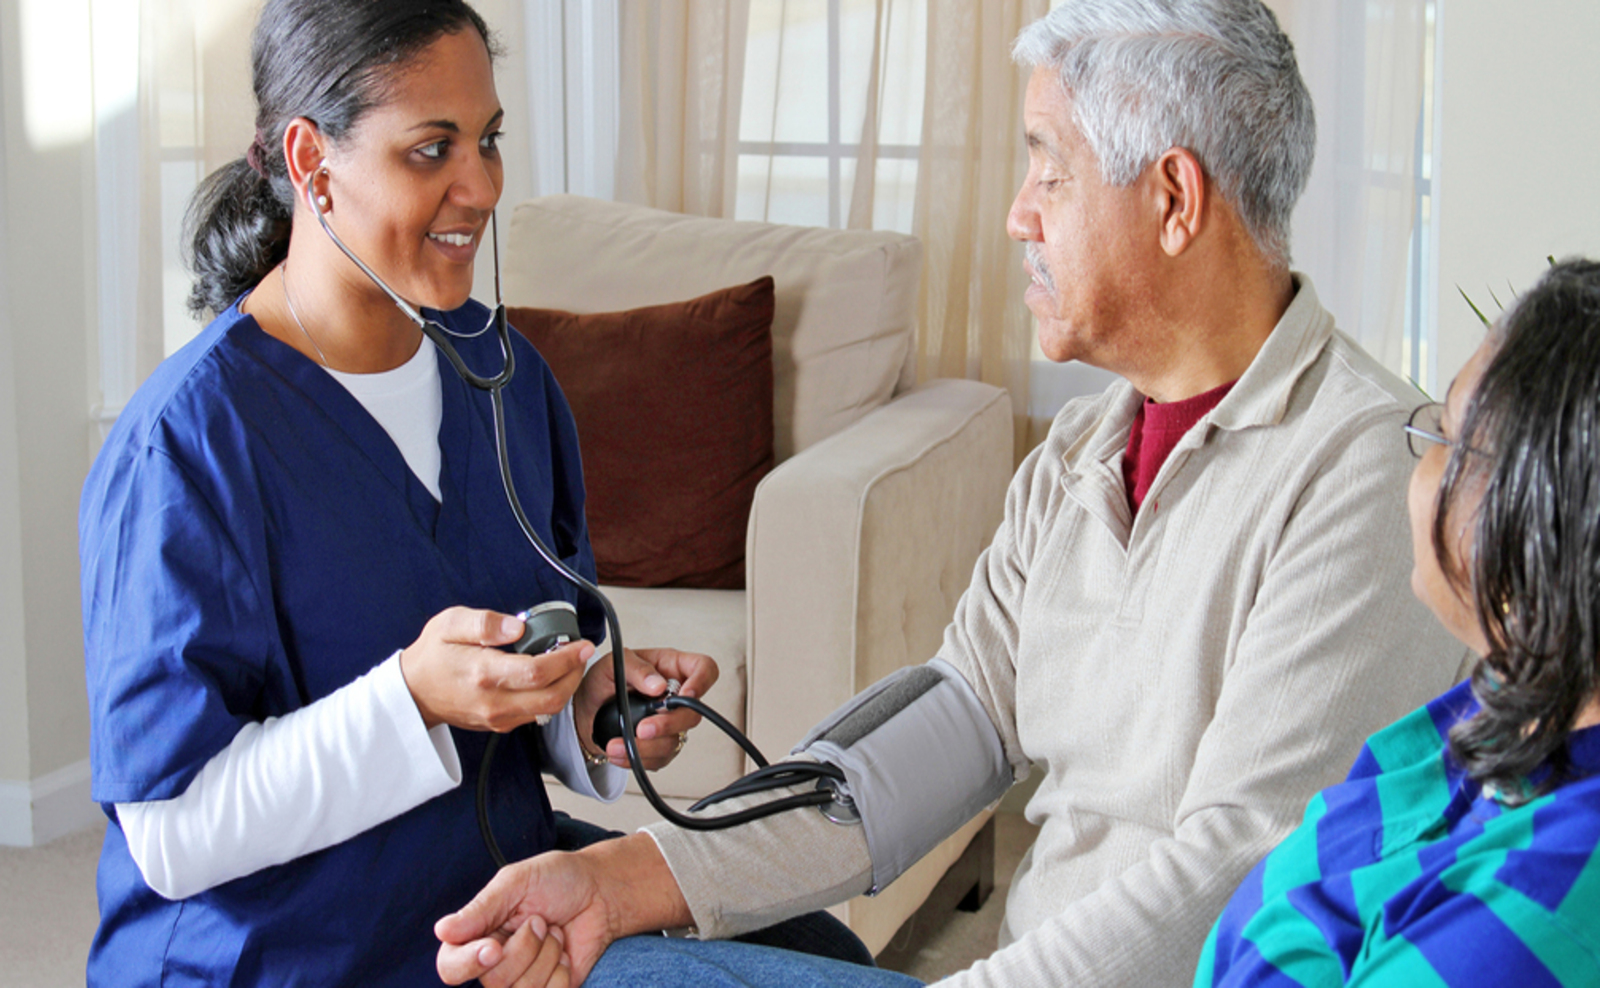 HOME HEALTH CARE SERVICE PROVIDERS